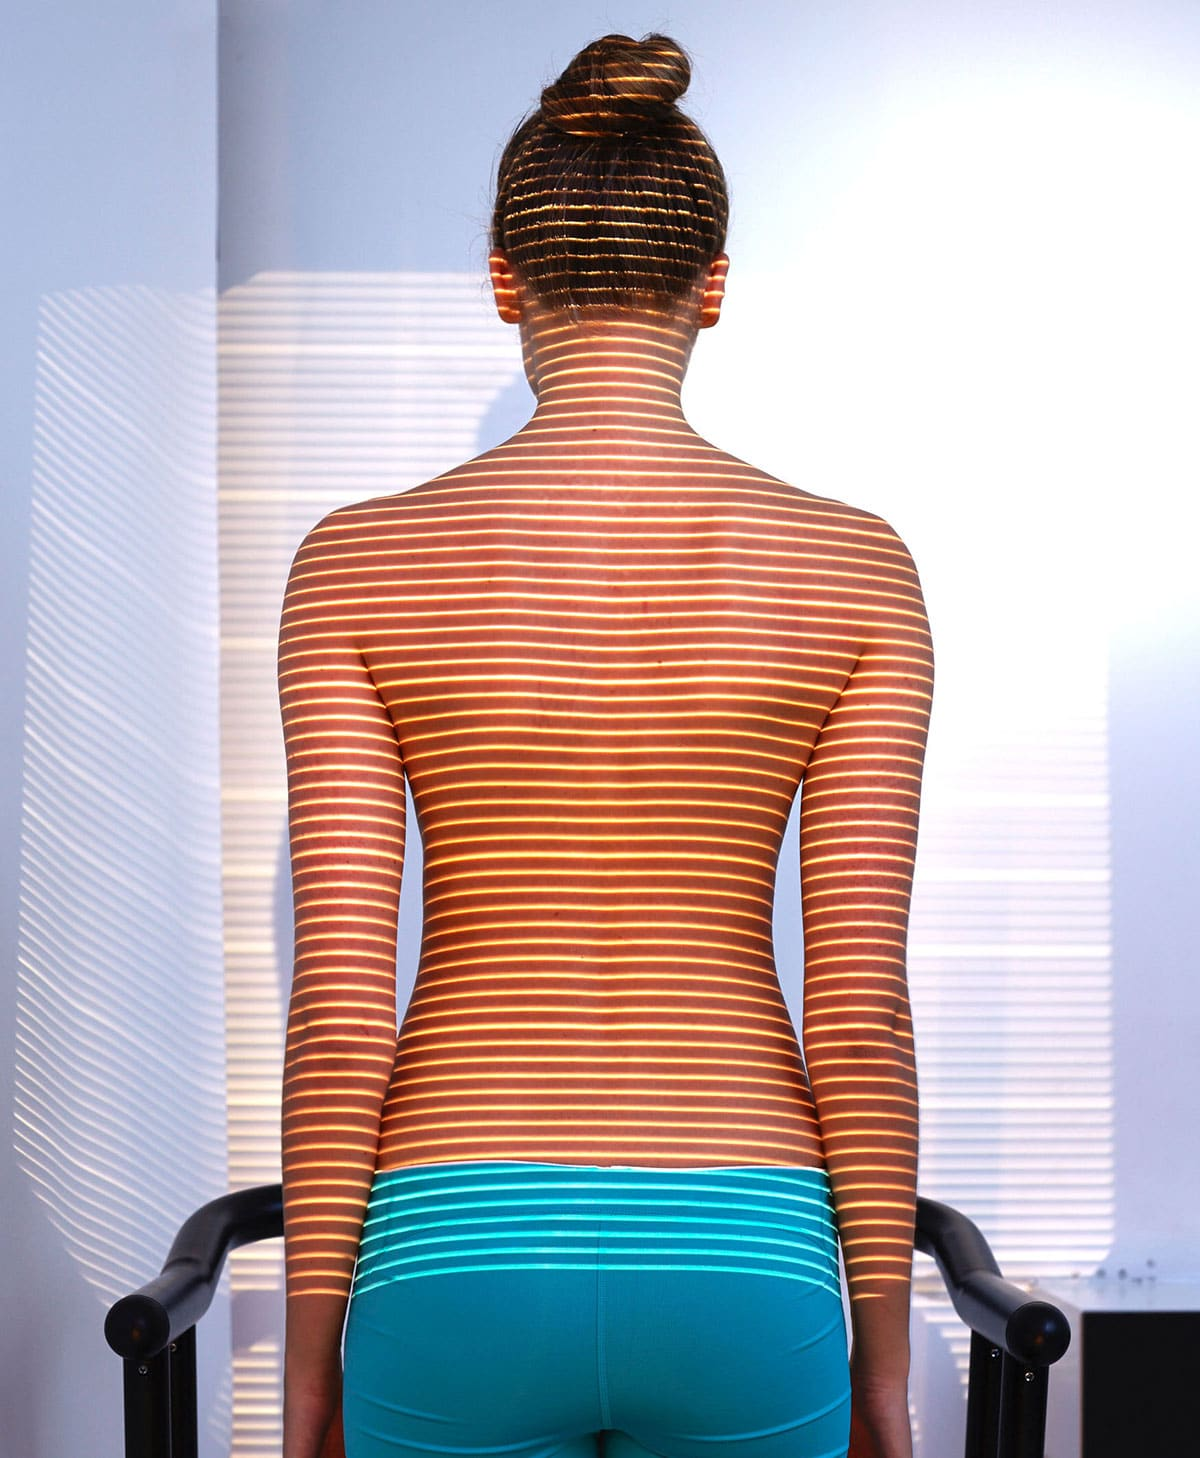 Women from the back for functional analysis